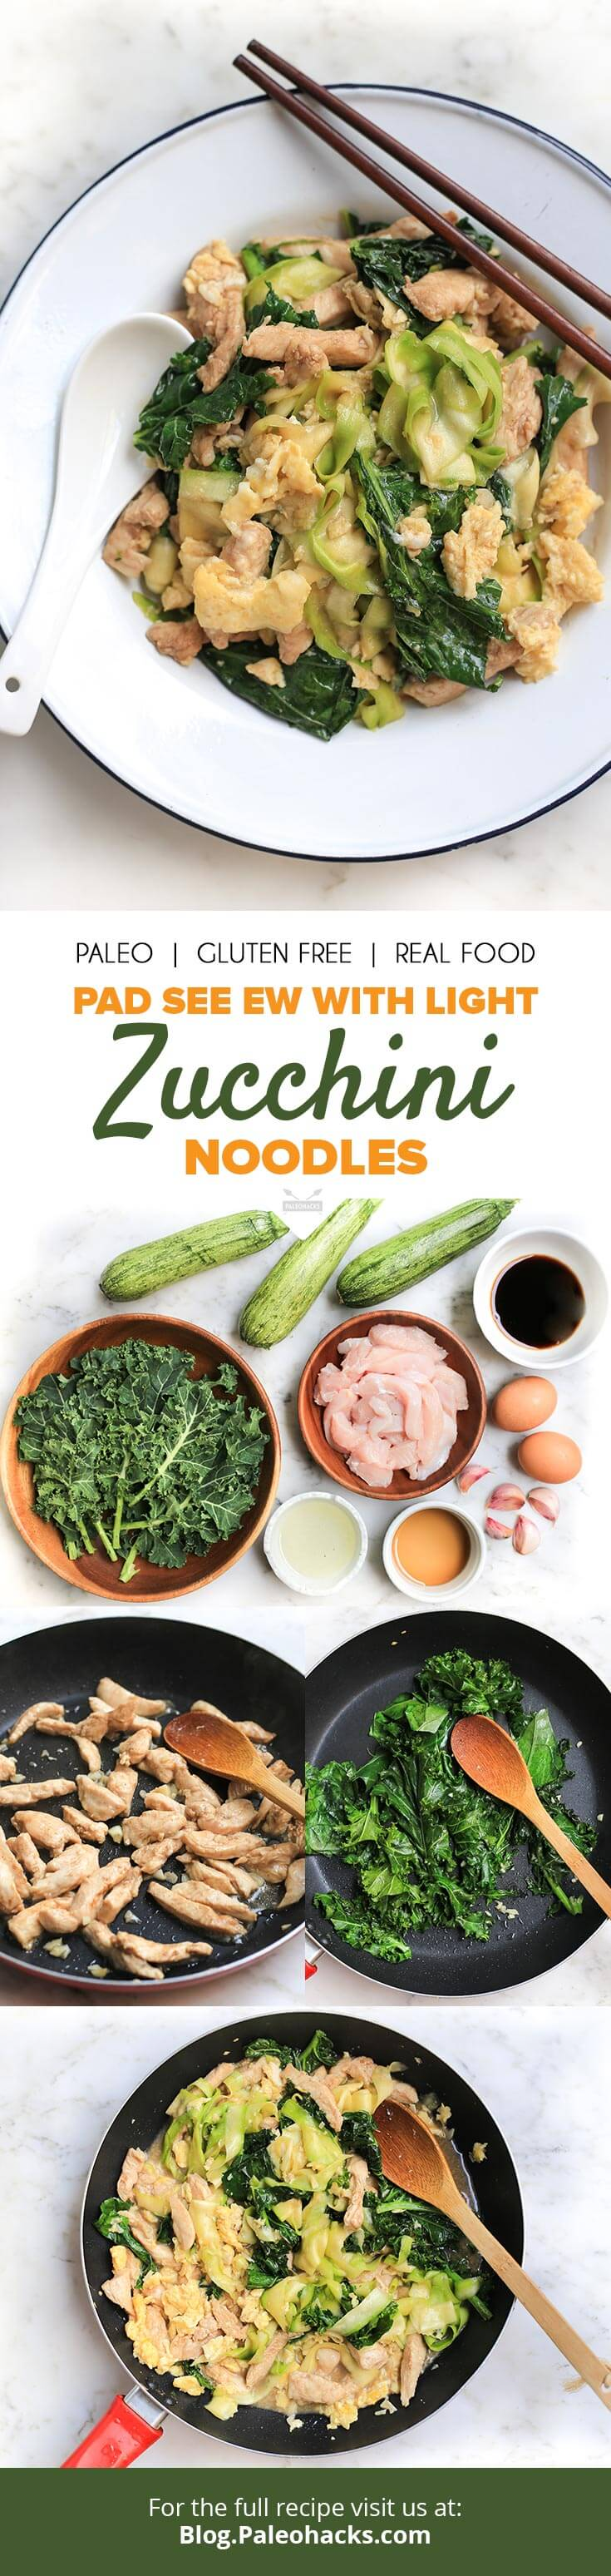 pad see ew with light zucchini noodles recipe paleohacks